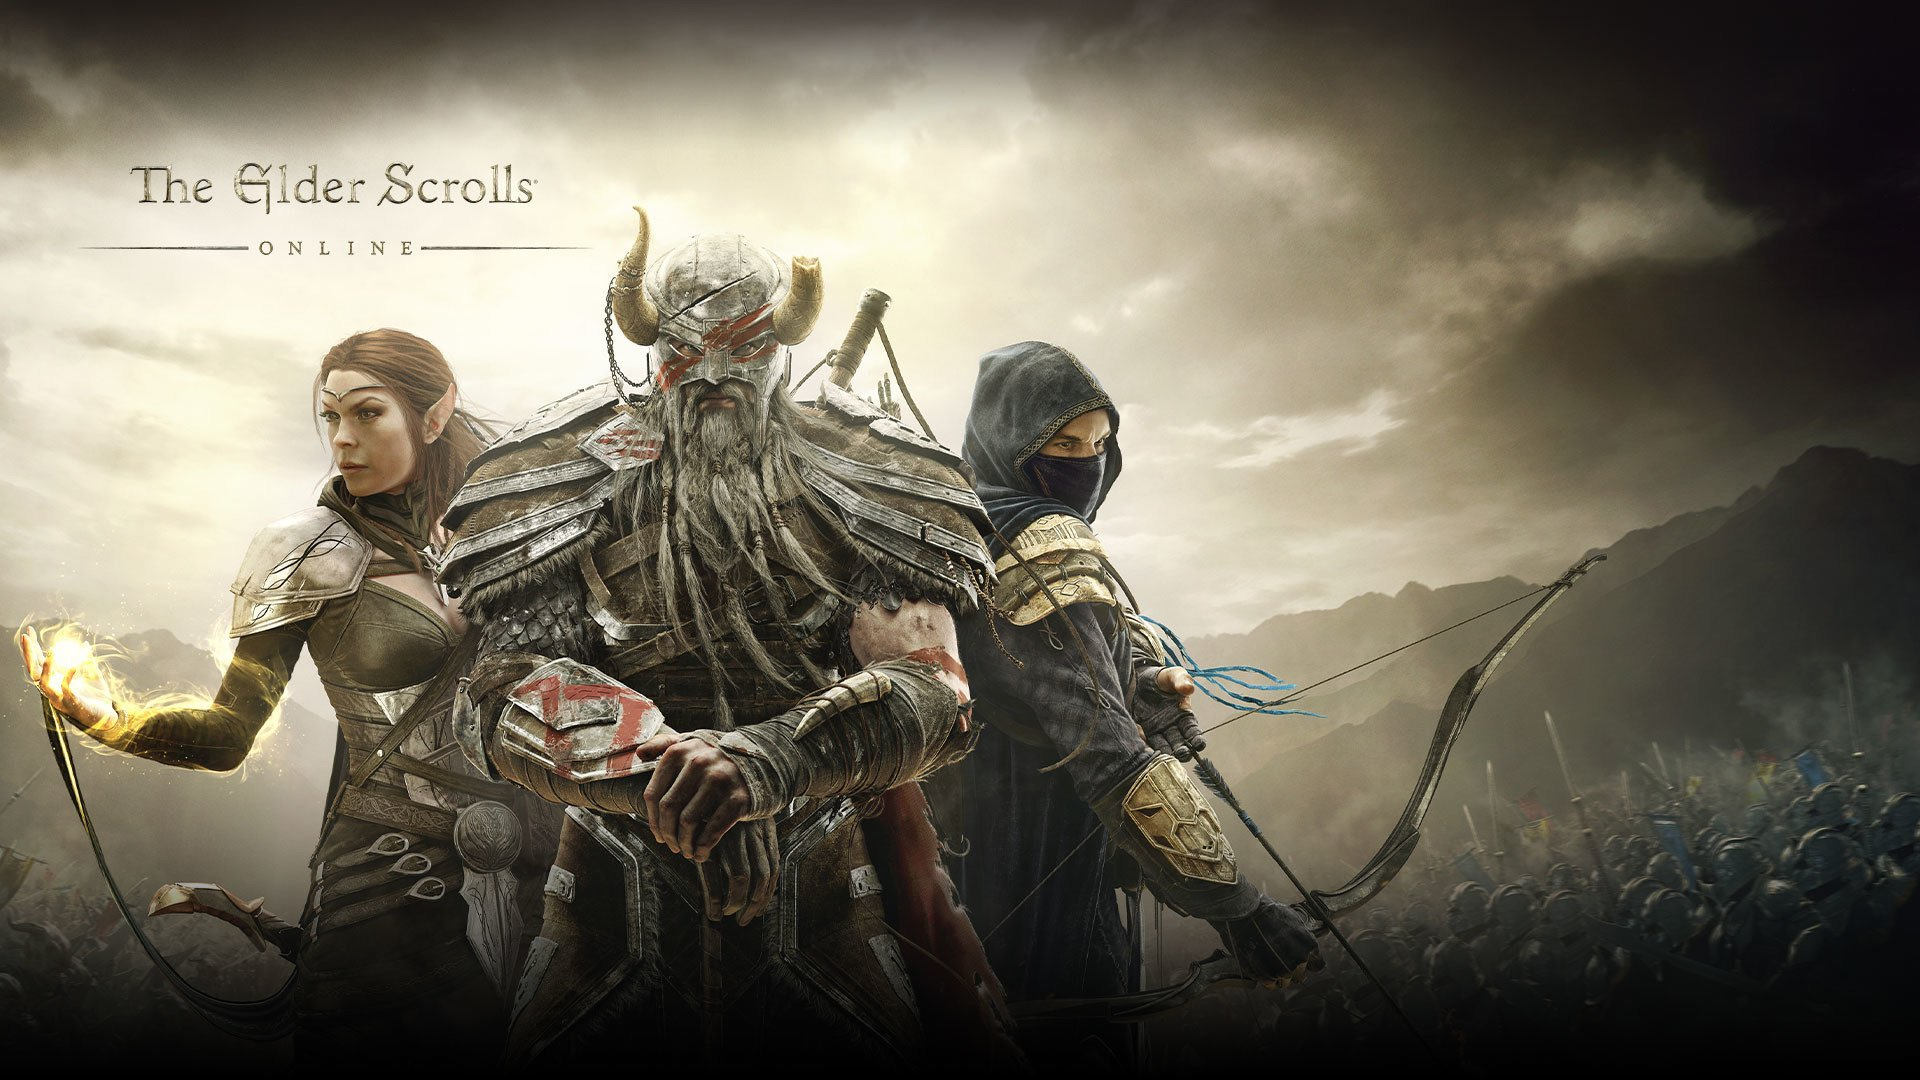 Gaming, Spiele, Games, Mmorpg, Mmo, Online-Rollenspiel, The Elder Scrolls Online, The Elder Scrolls, Teso